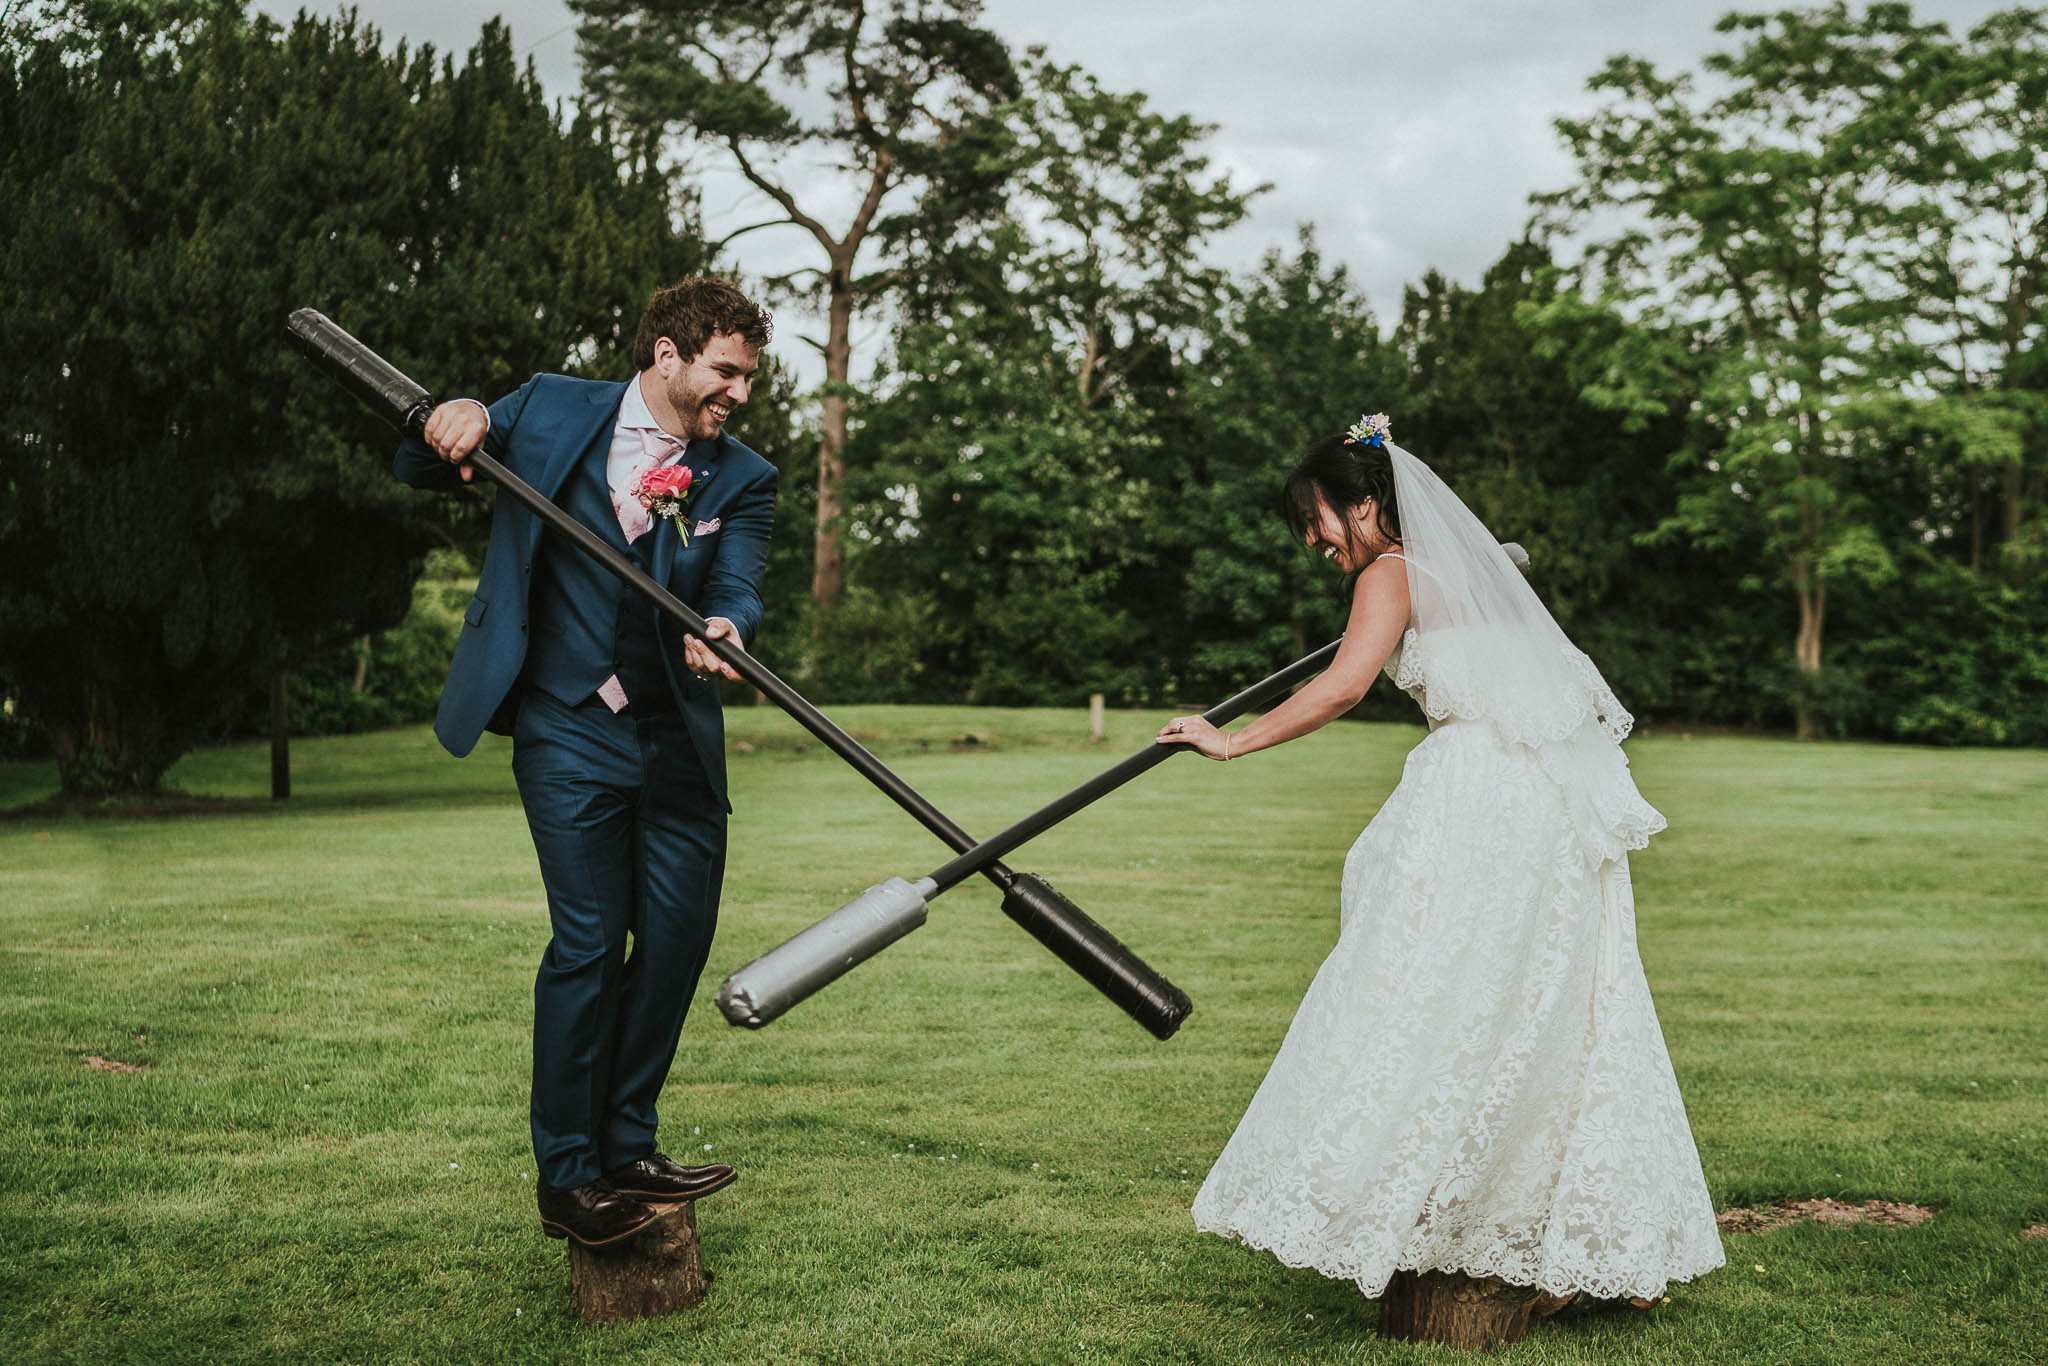 exciting-wedding-game-ideas